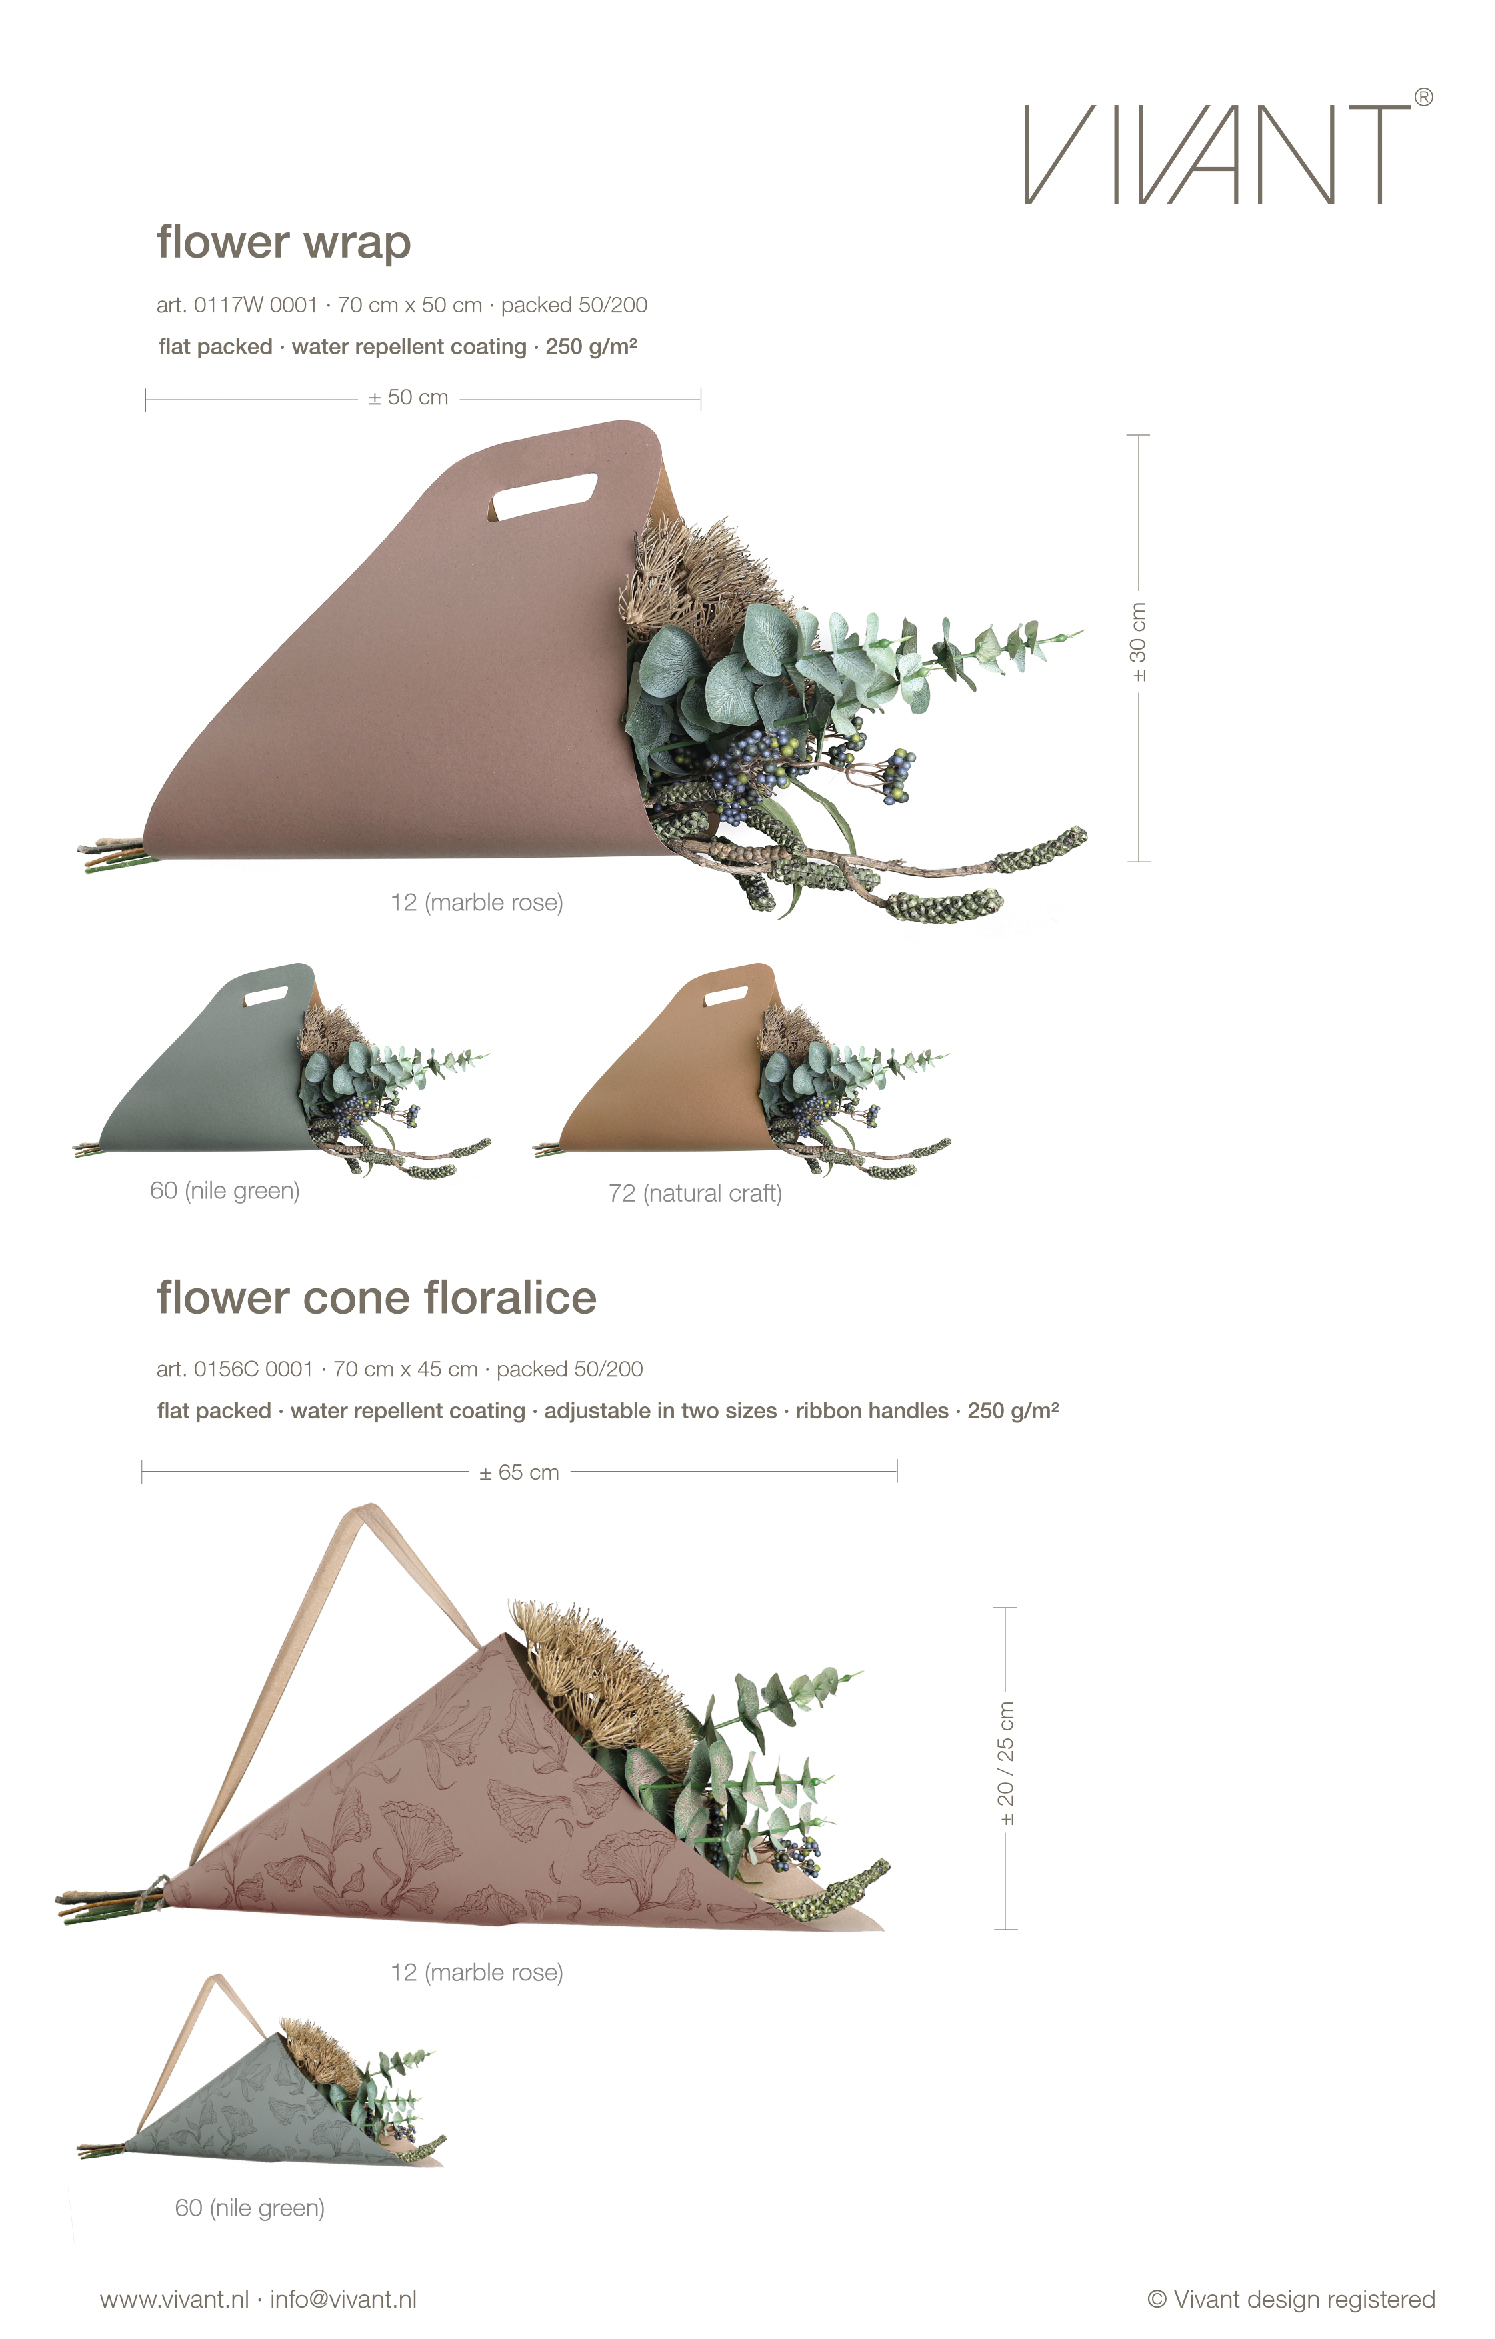 Floralice flower cone as floral flowerbag with carrying ribbon in rose or green